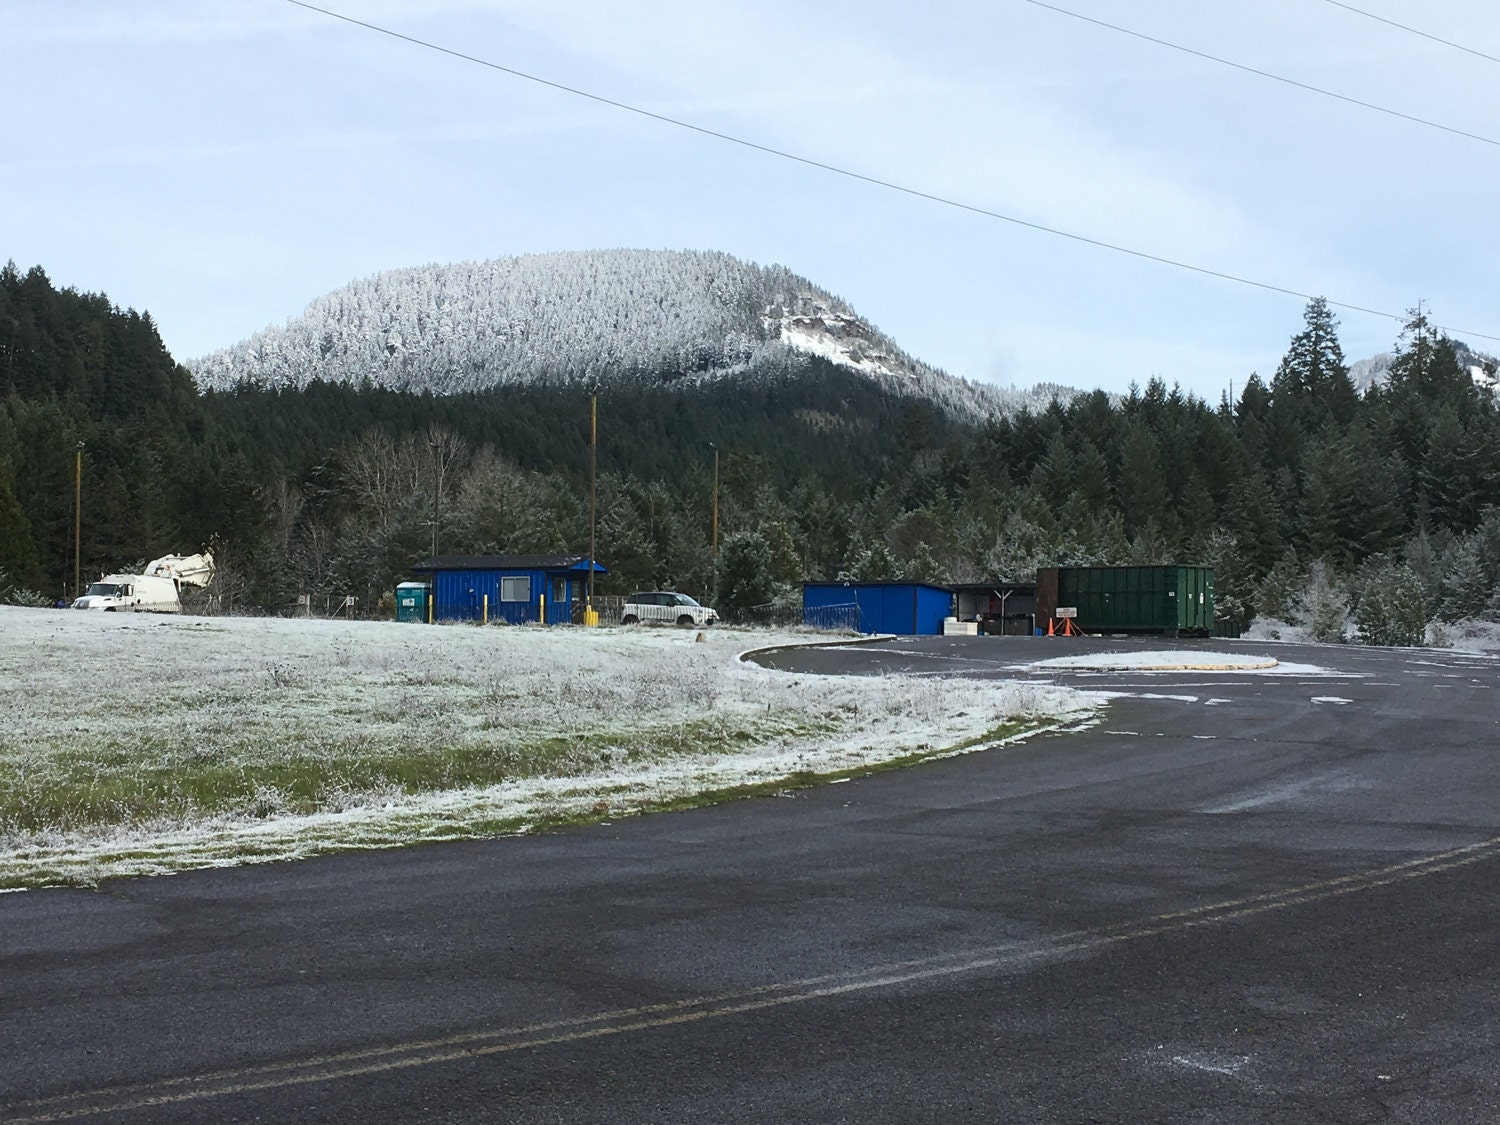 The hilltop recycle center.